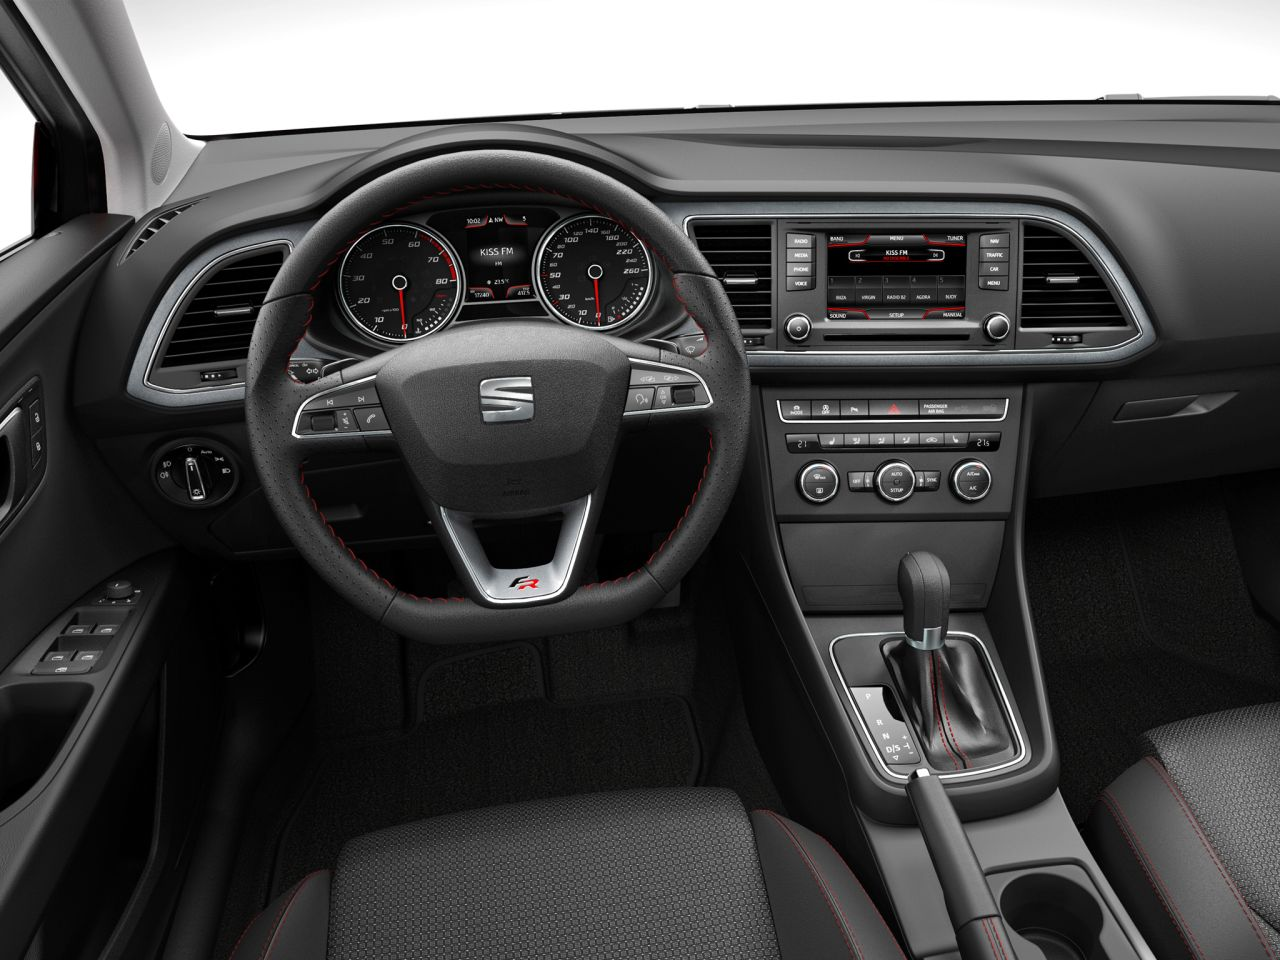 Seat leon iii les images officielles avec la version fr for Interieur seat leon